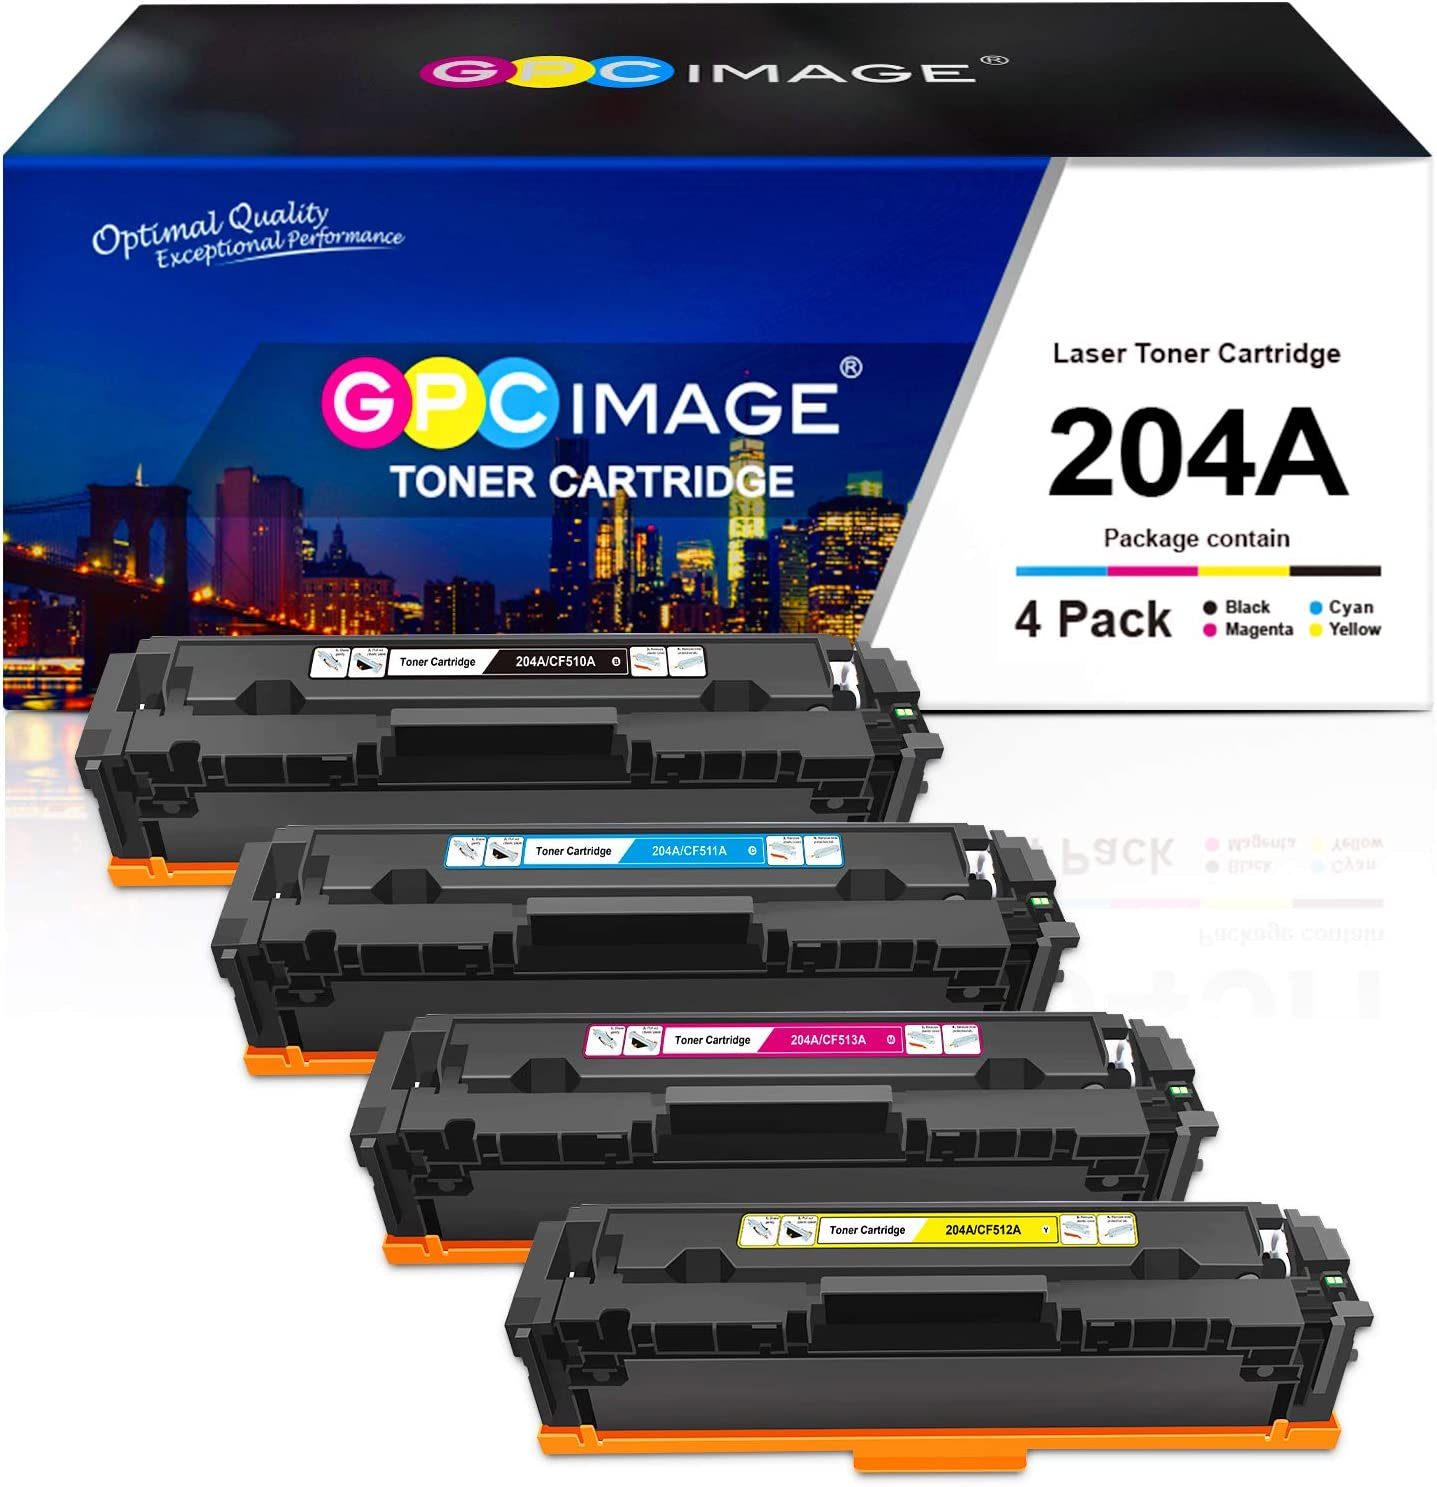 GPC Image Compatible Toner Cartridge Replacement for HP 204A 204 A CF510A CF511A CF512A CF513A to use with Color Laserjet Pro MFP M180nw M154nw M180n M154a MFP M181fw Printer (4 Pack)